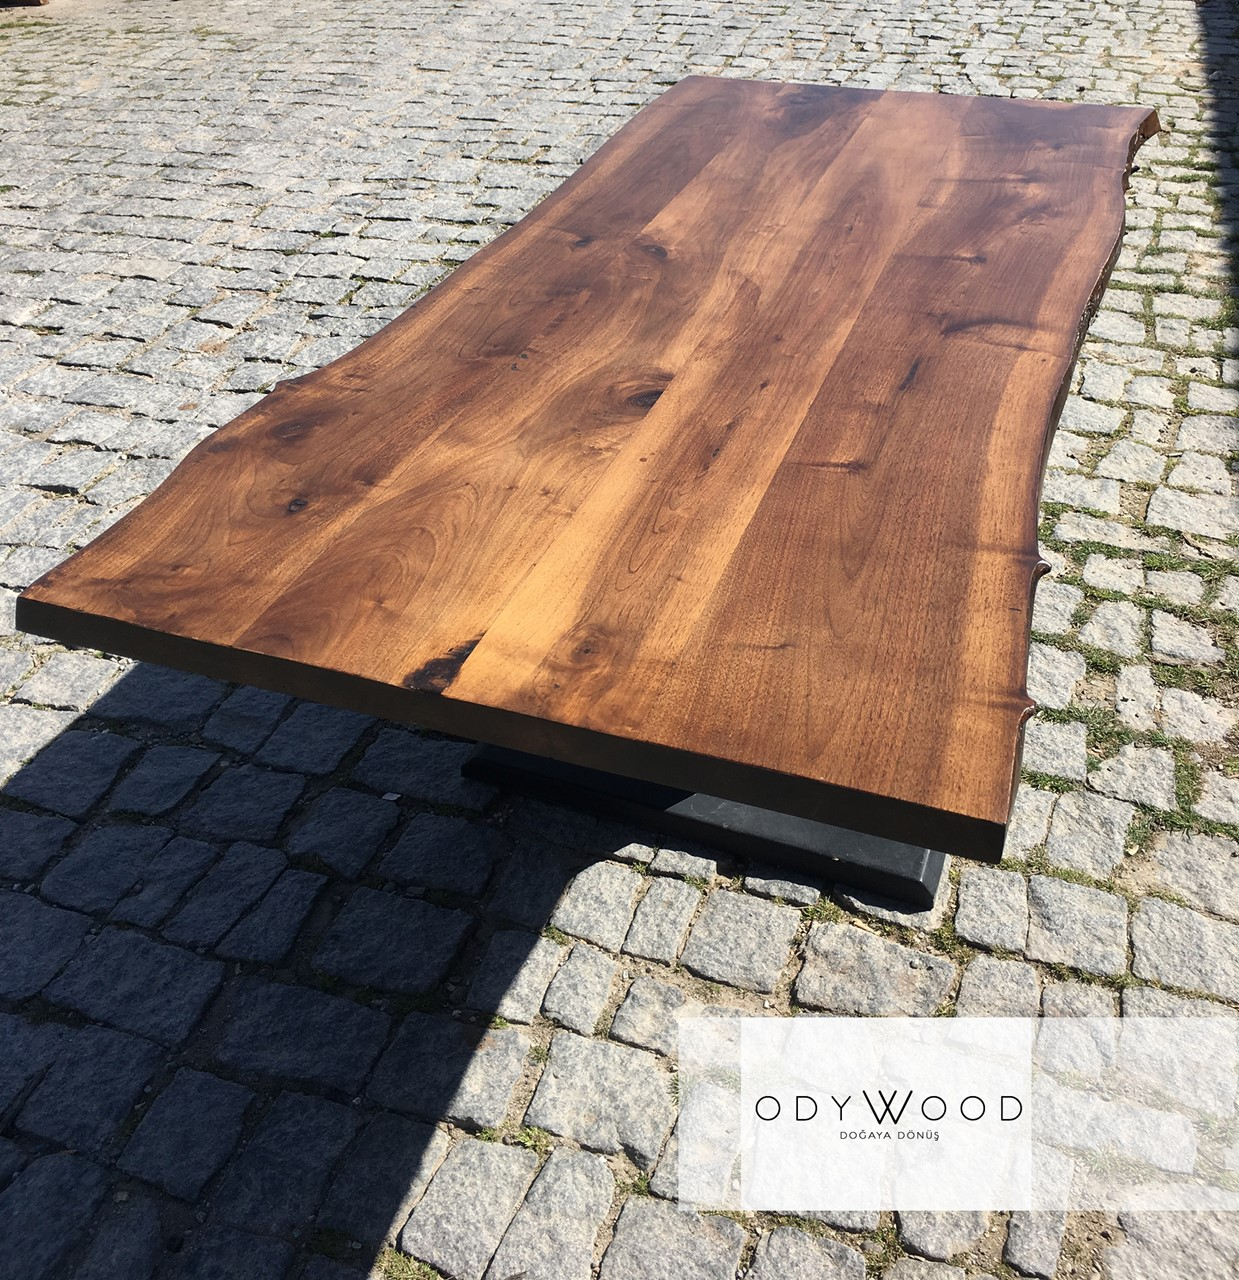 Walnut Wood Dining Table'in resmi